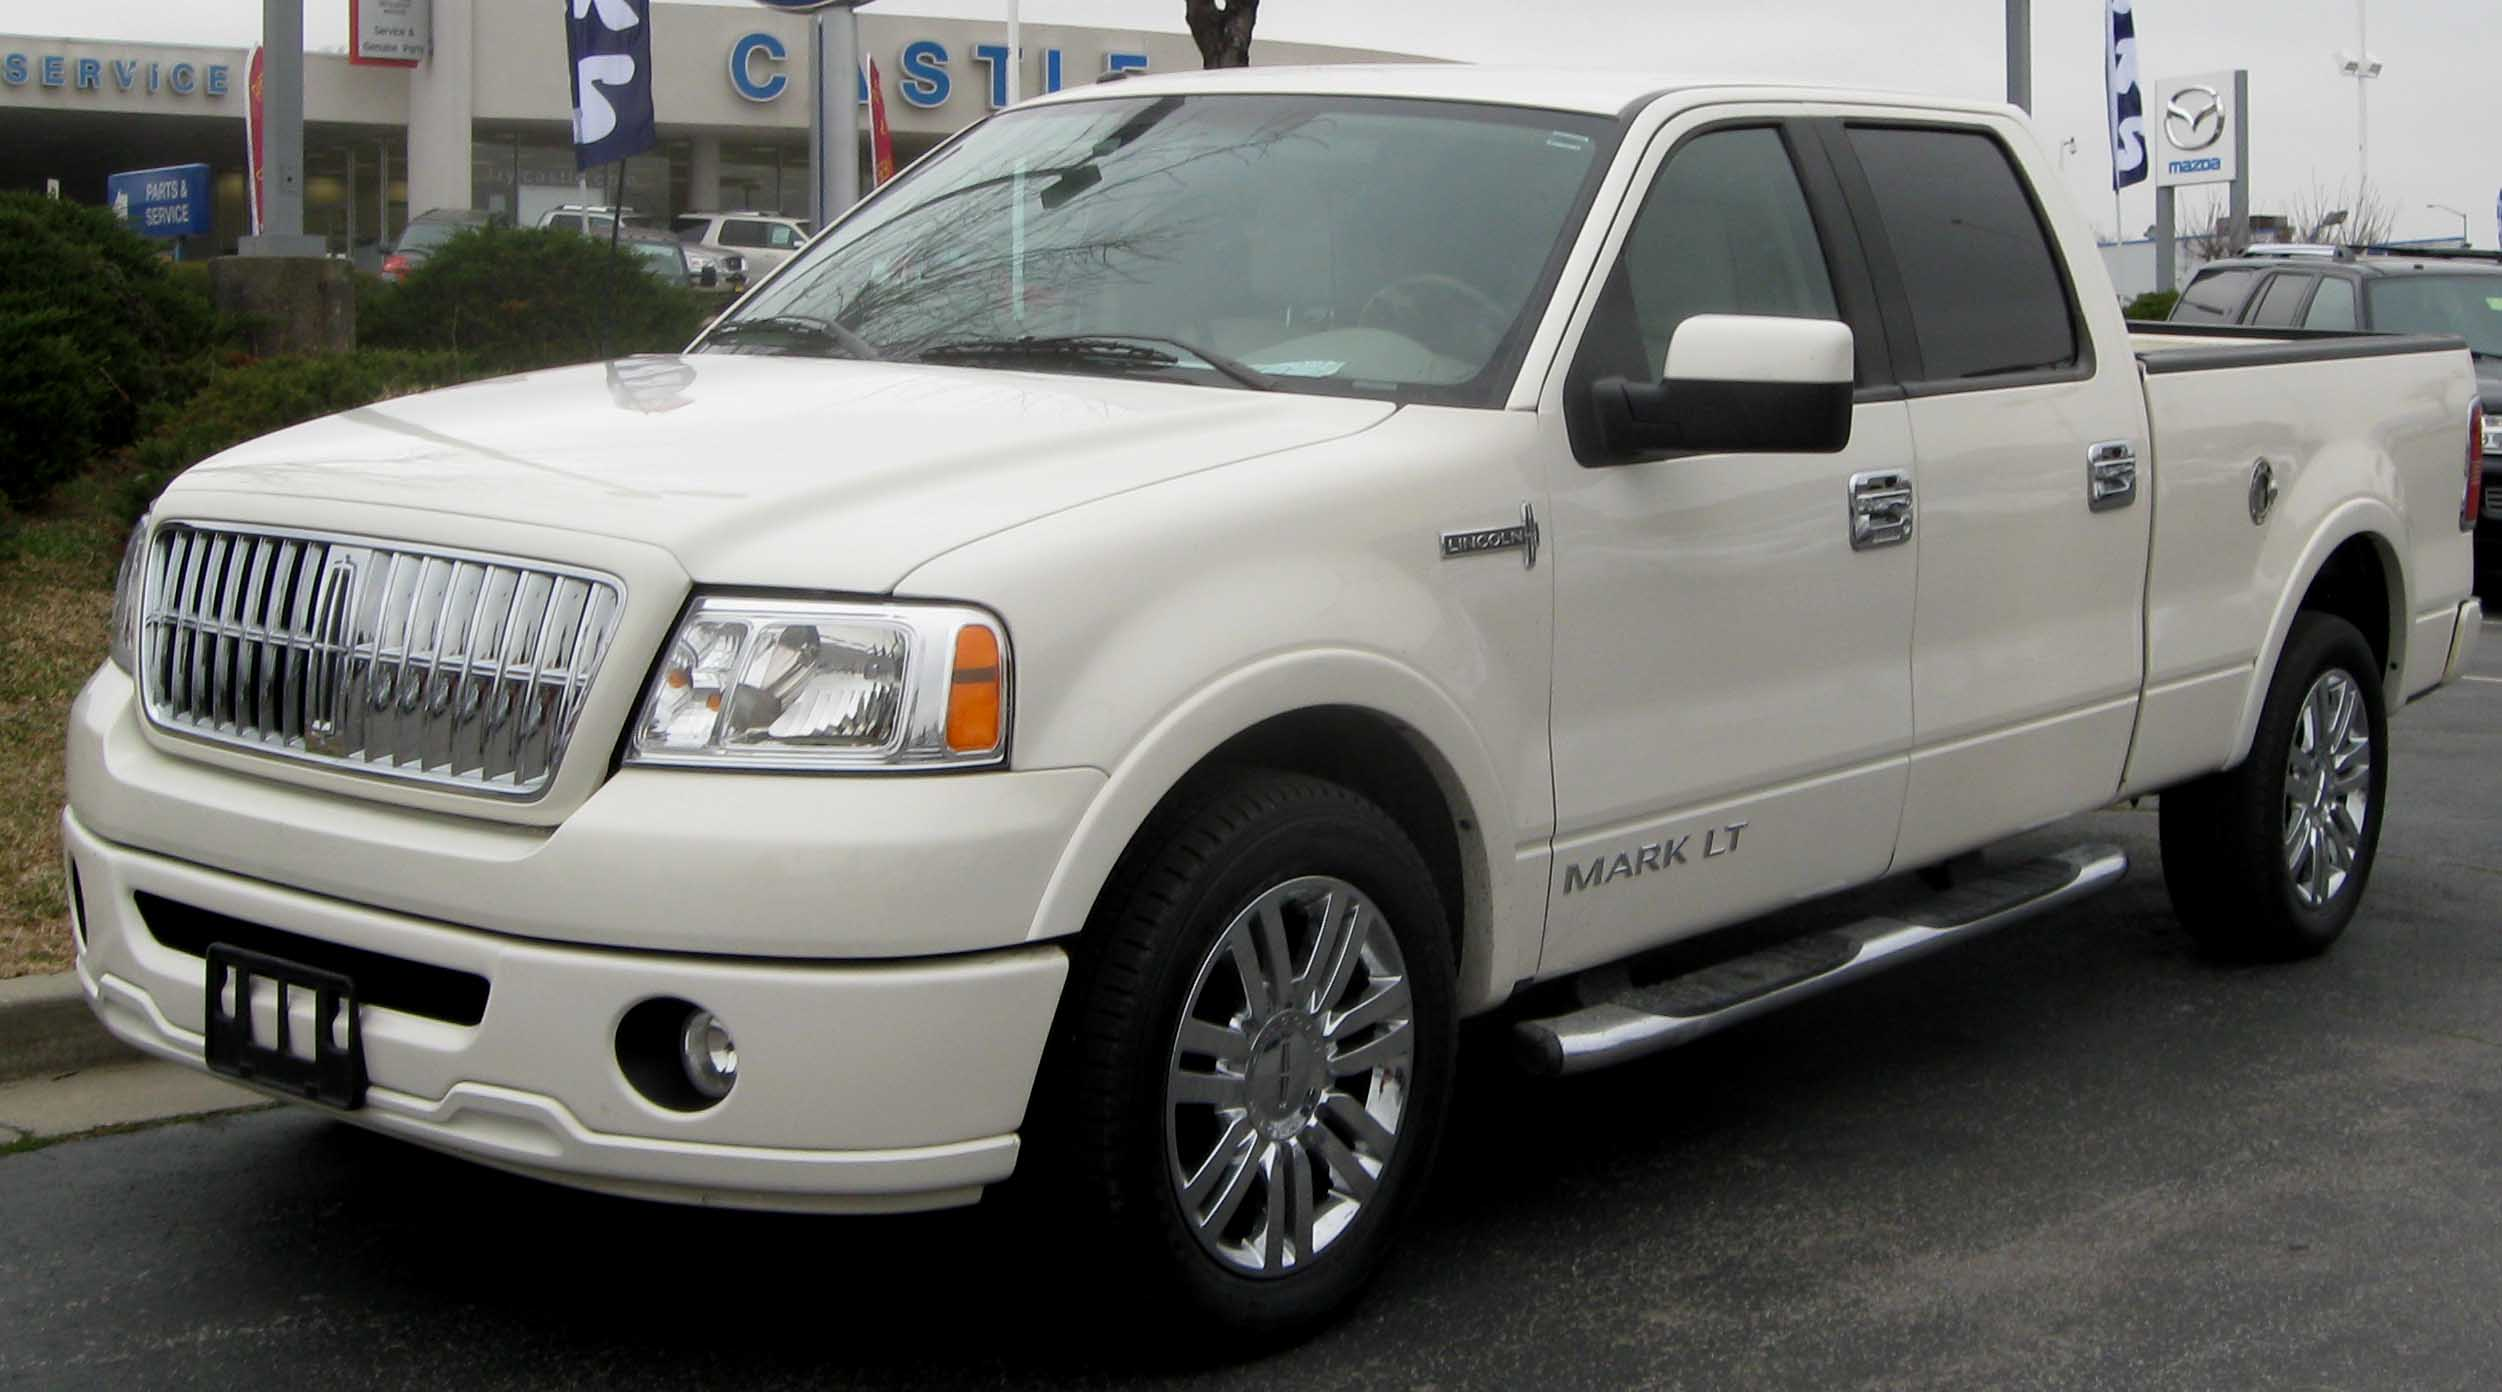 2006 Lincoln Mark Lt #1